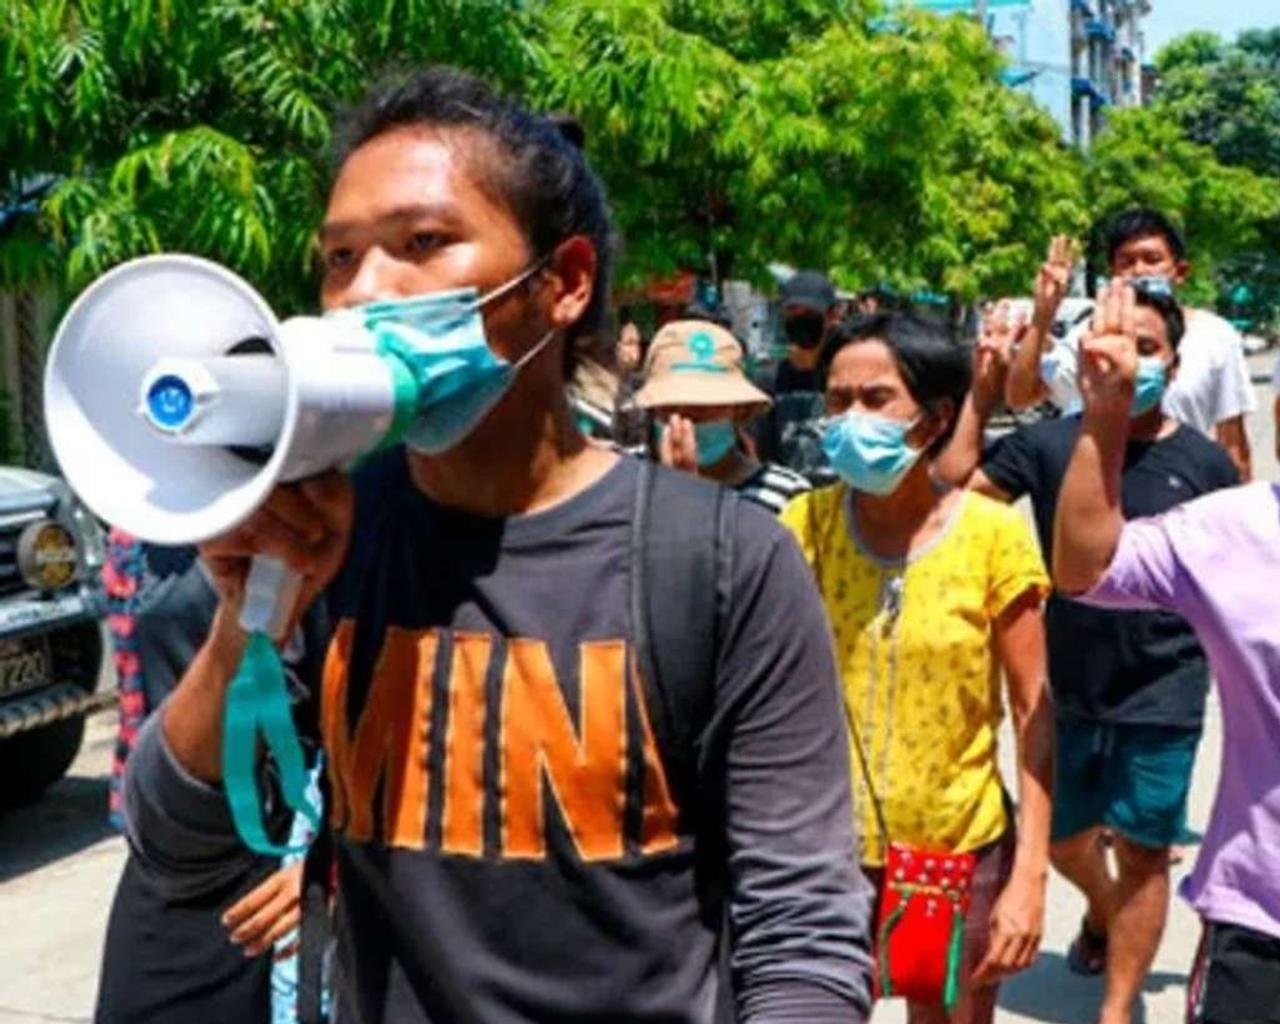 Over 80 demonstrators have been killed by Myanmar security forces using rifle grenades, according to a monitoring group.